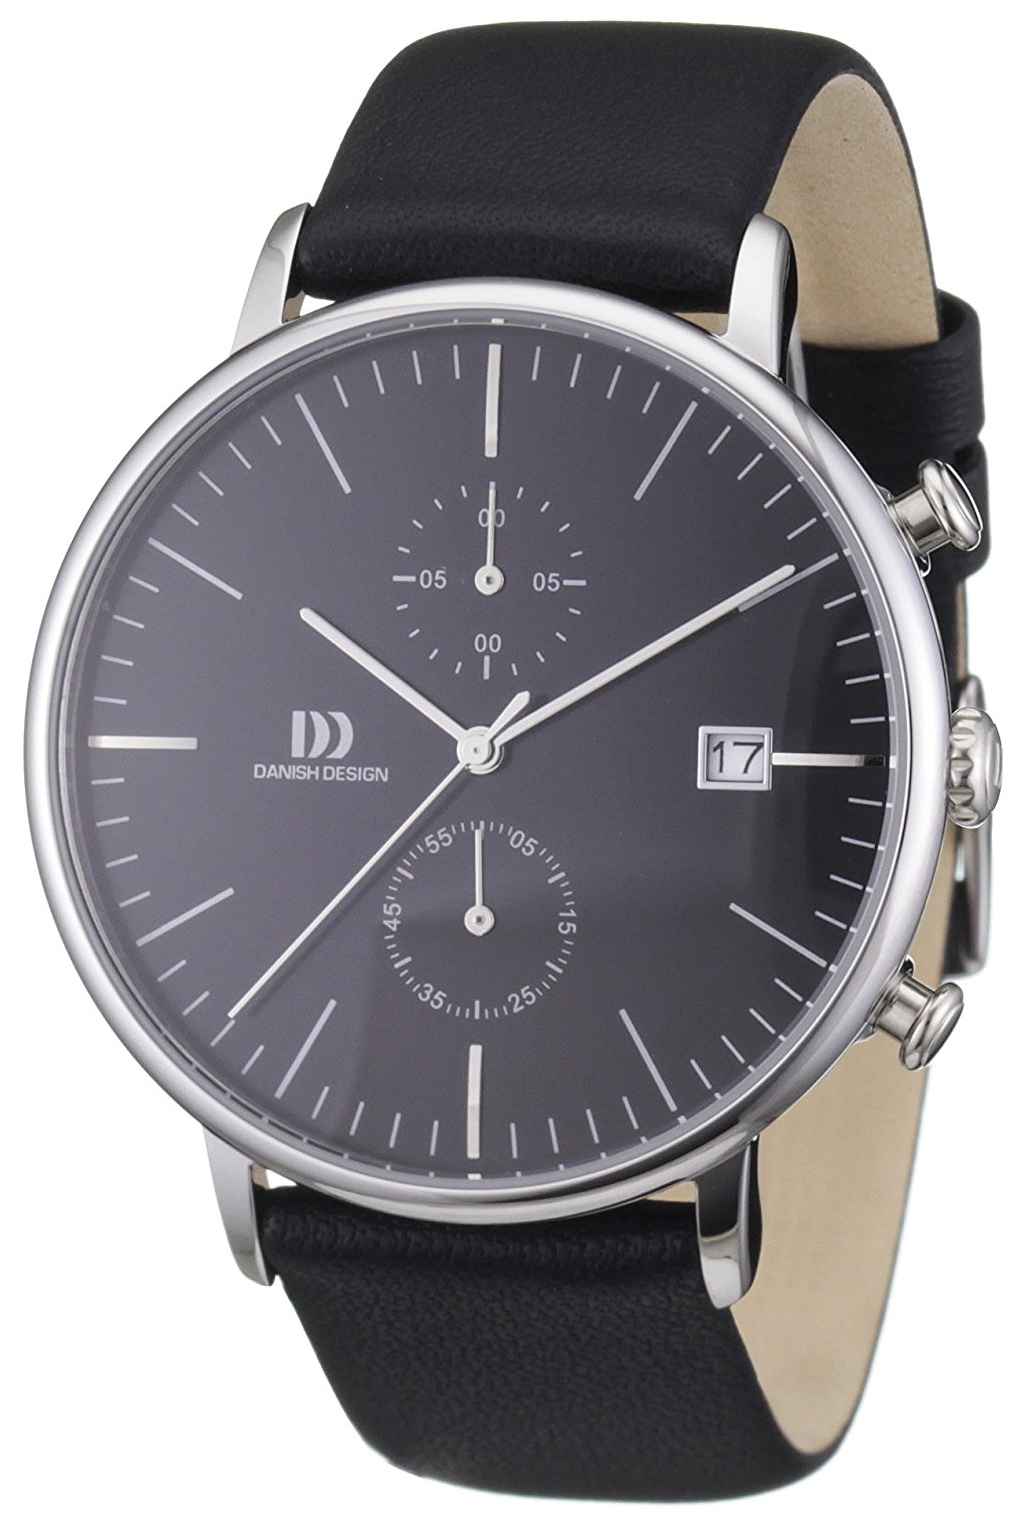 Danish Design Sport Herrklocka 3314401 Svart/Läder Ø42 mm - Danish Design